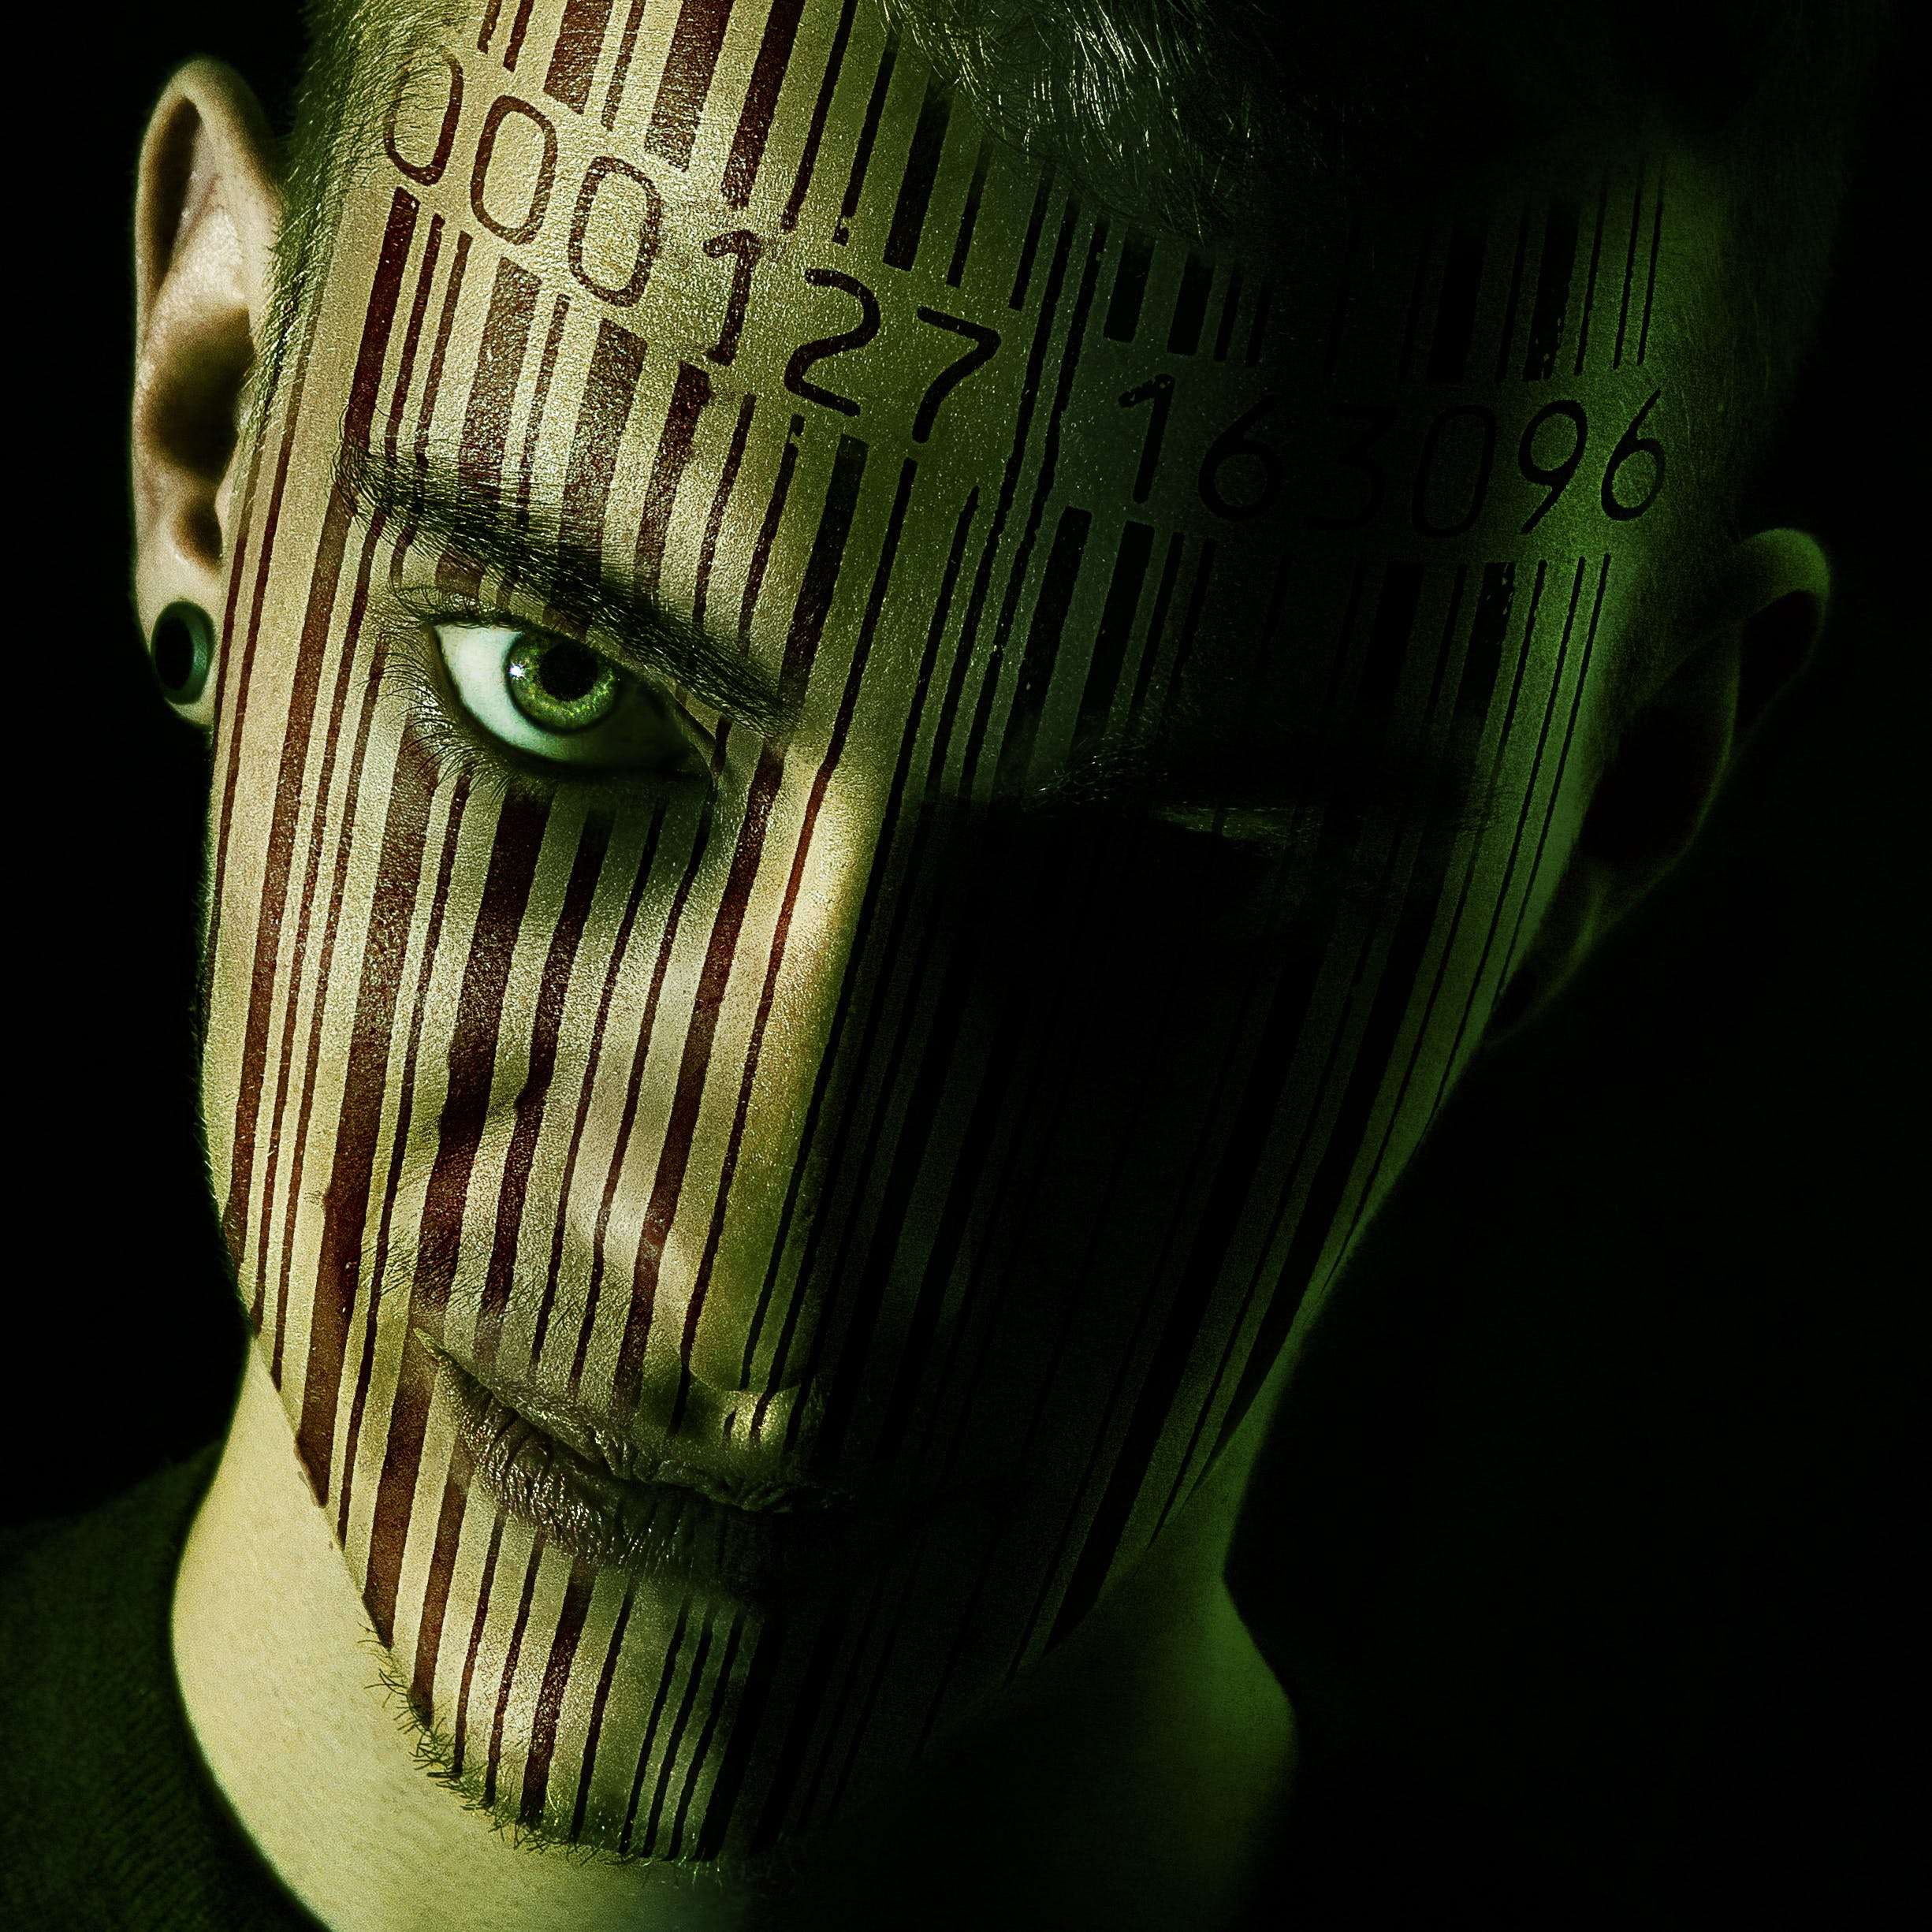 Man's Face With Barcode